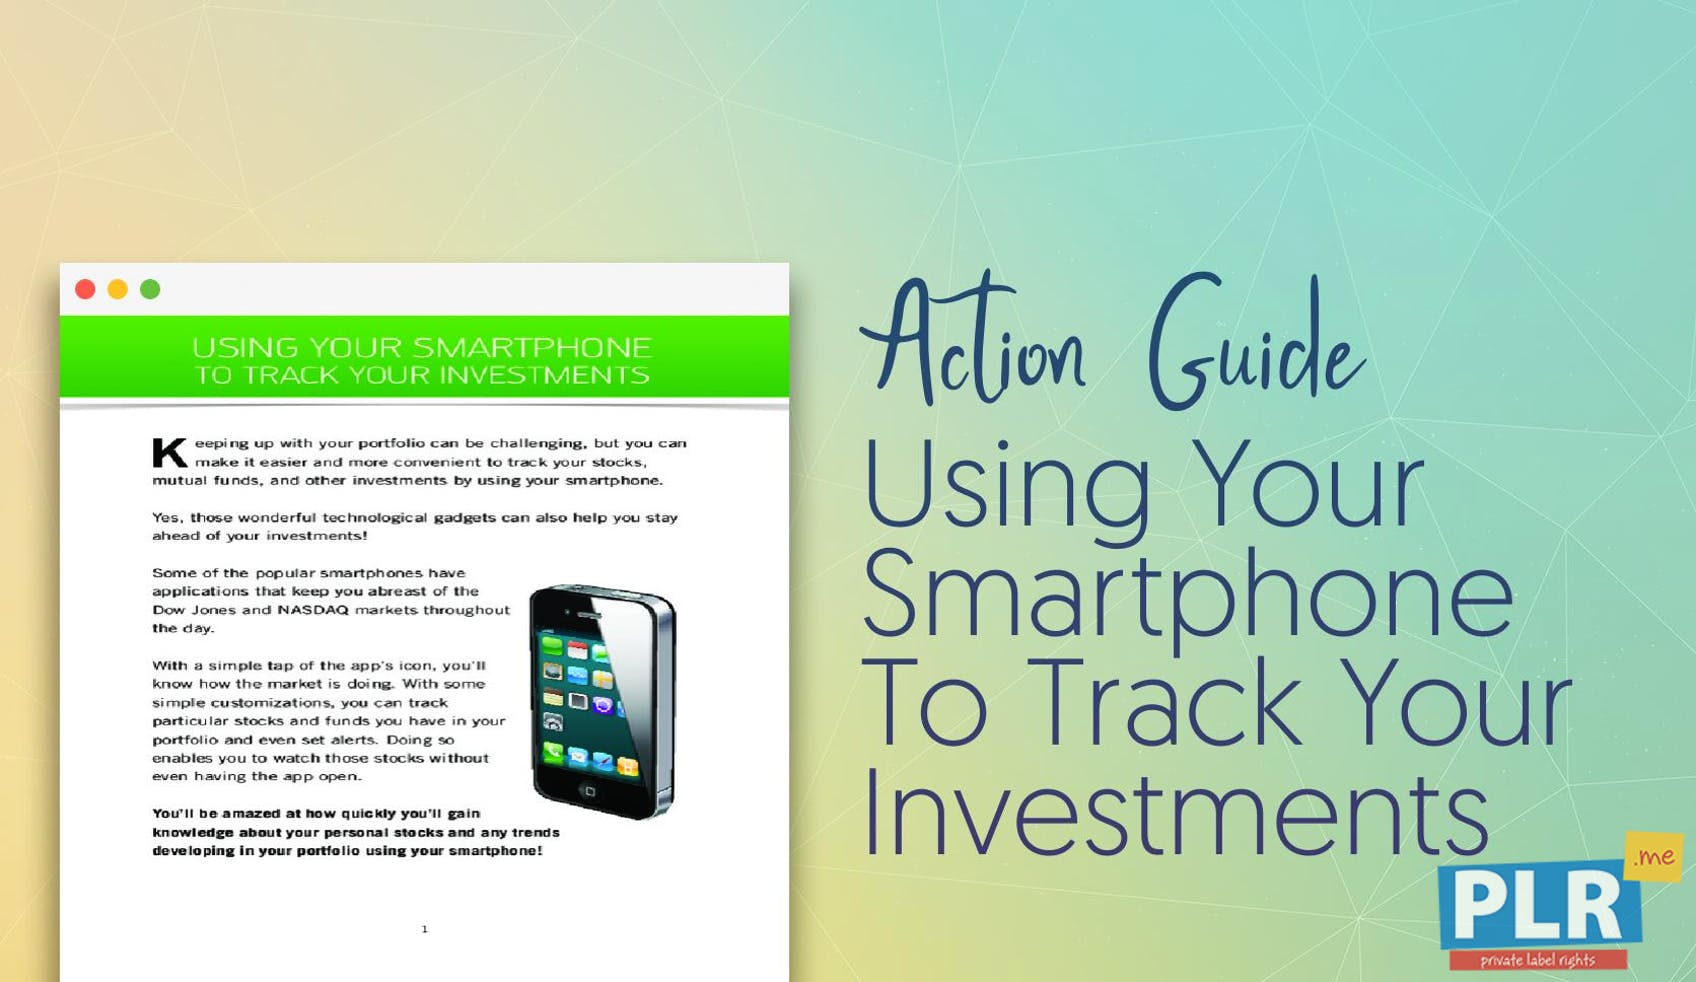 Using Your Smartphone To Track Your Investments